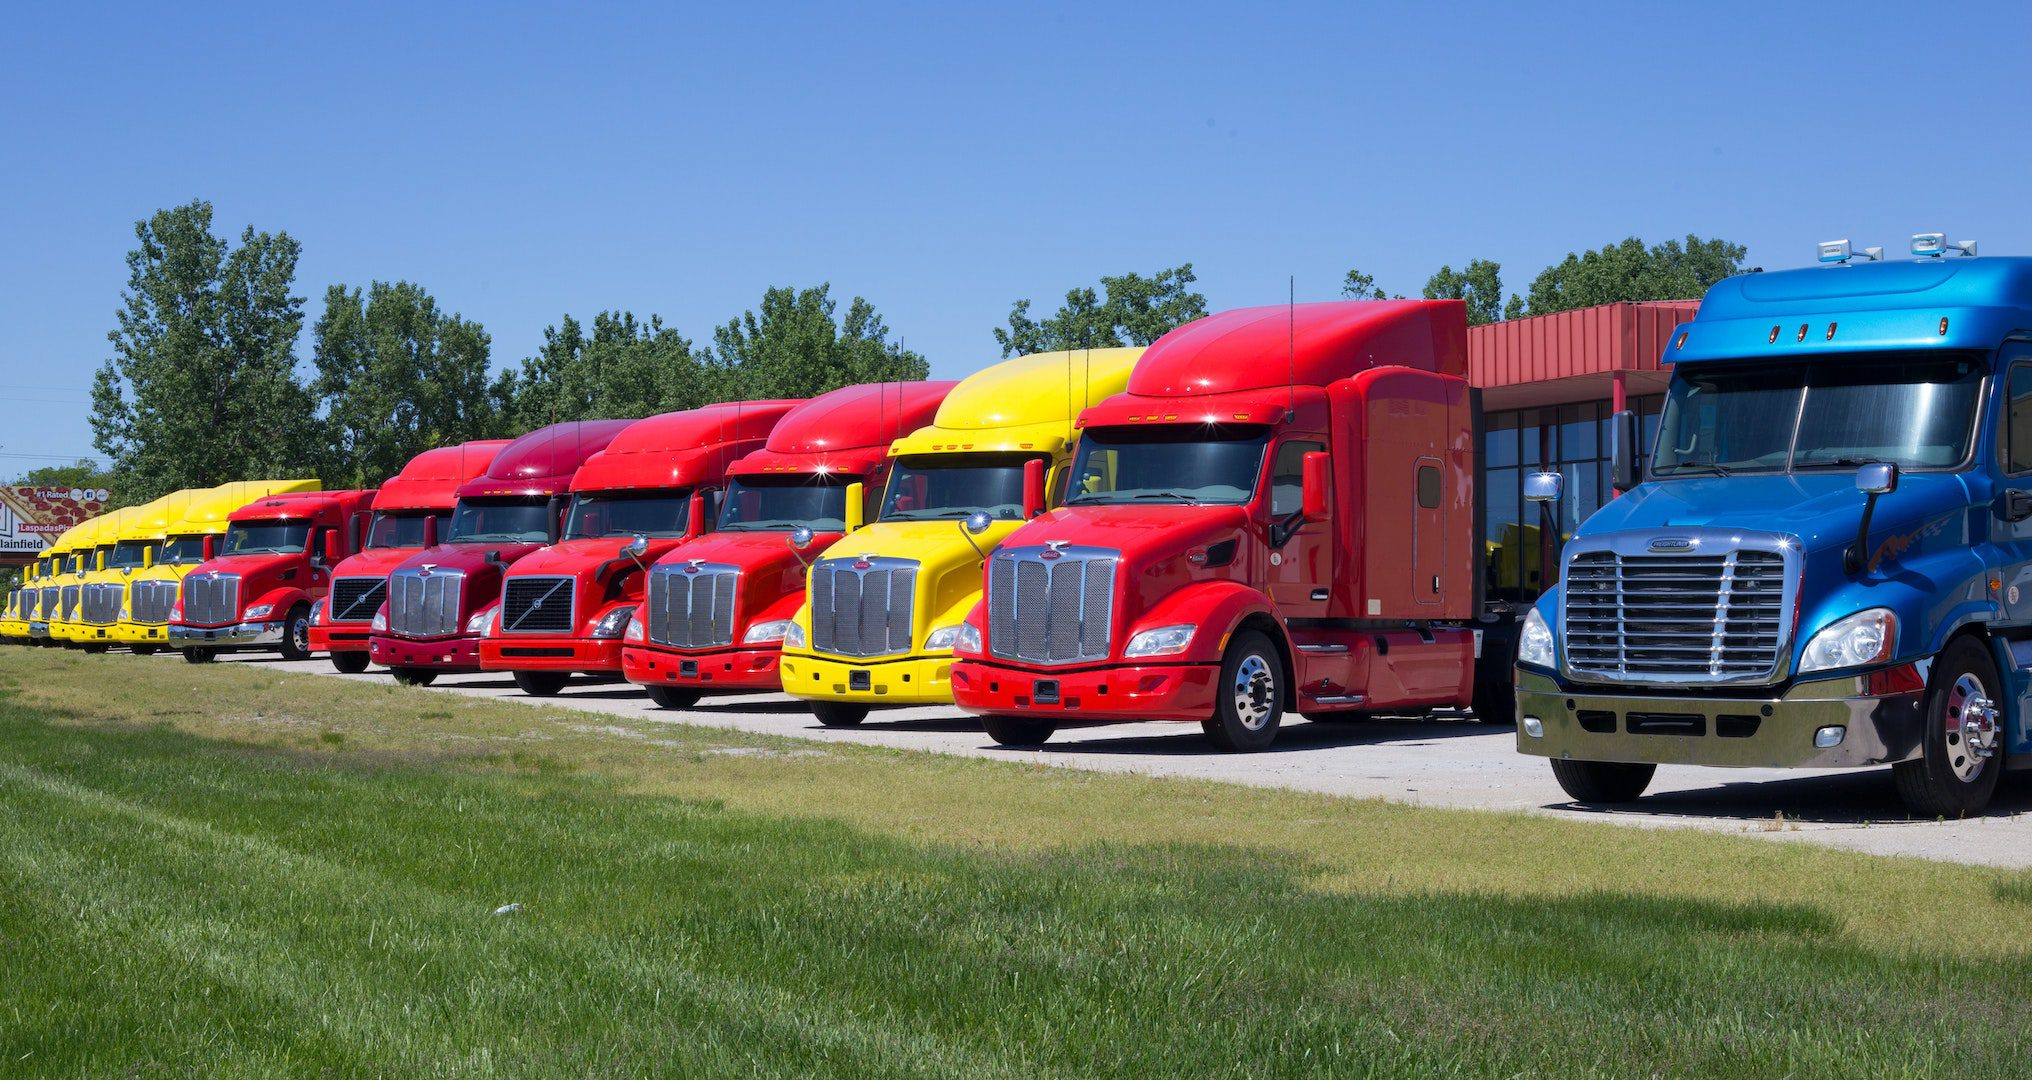 red, yellow, and blue semi trucks lined up